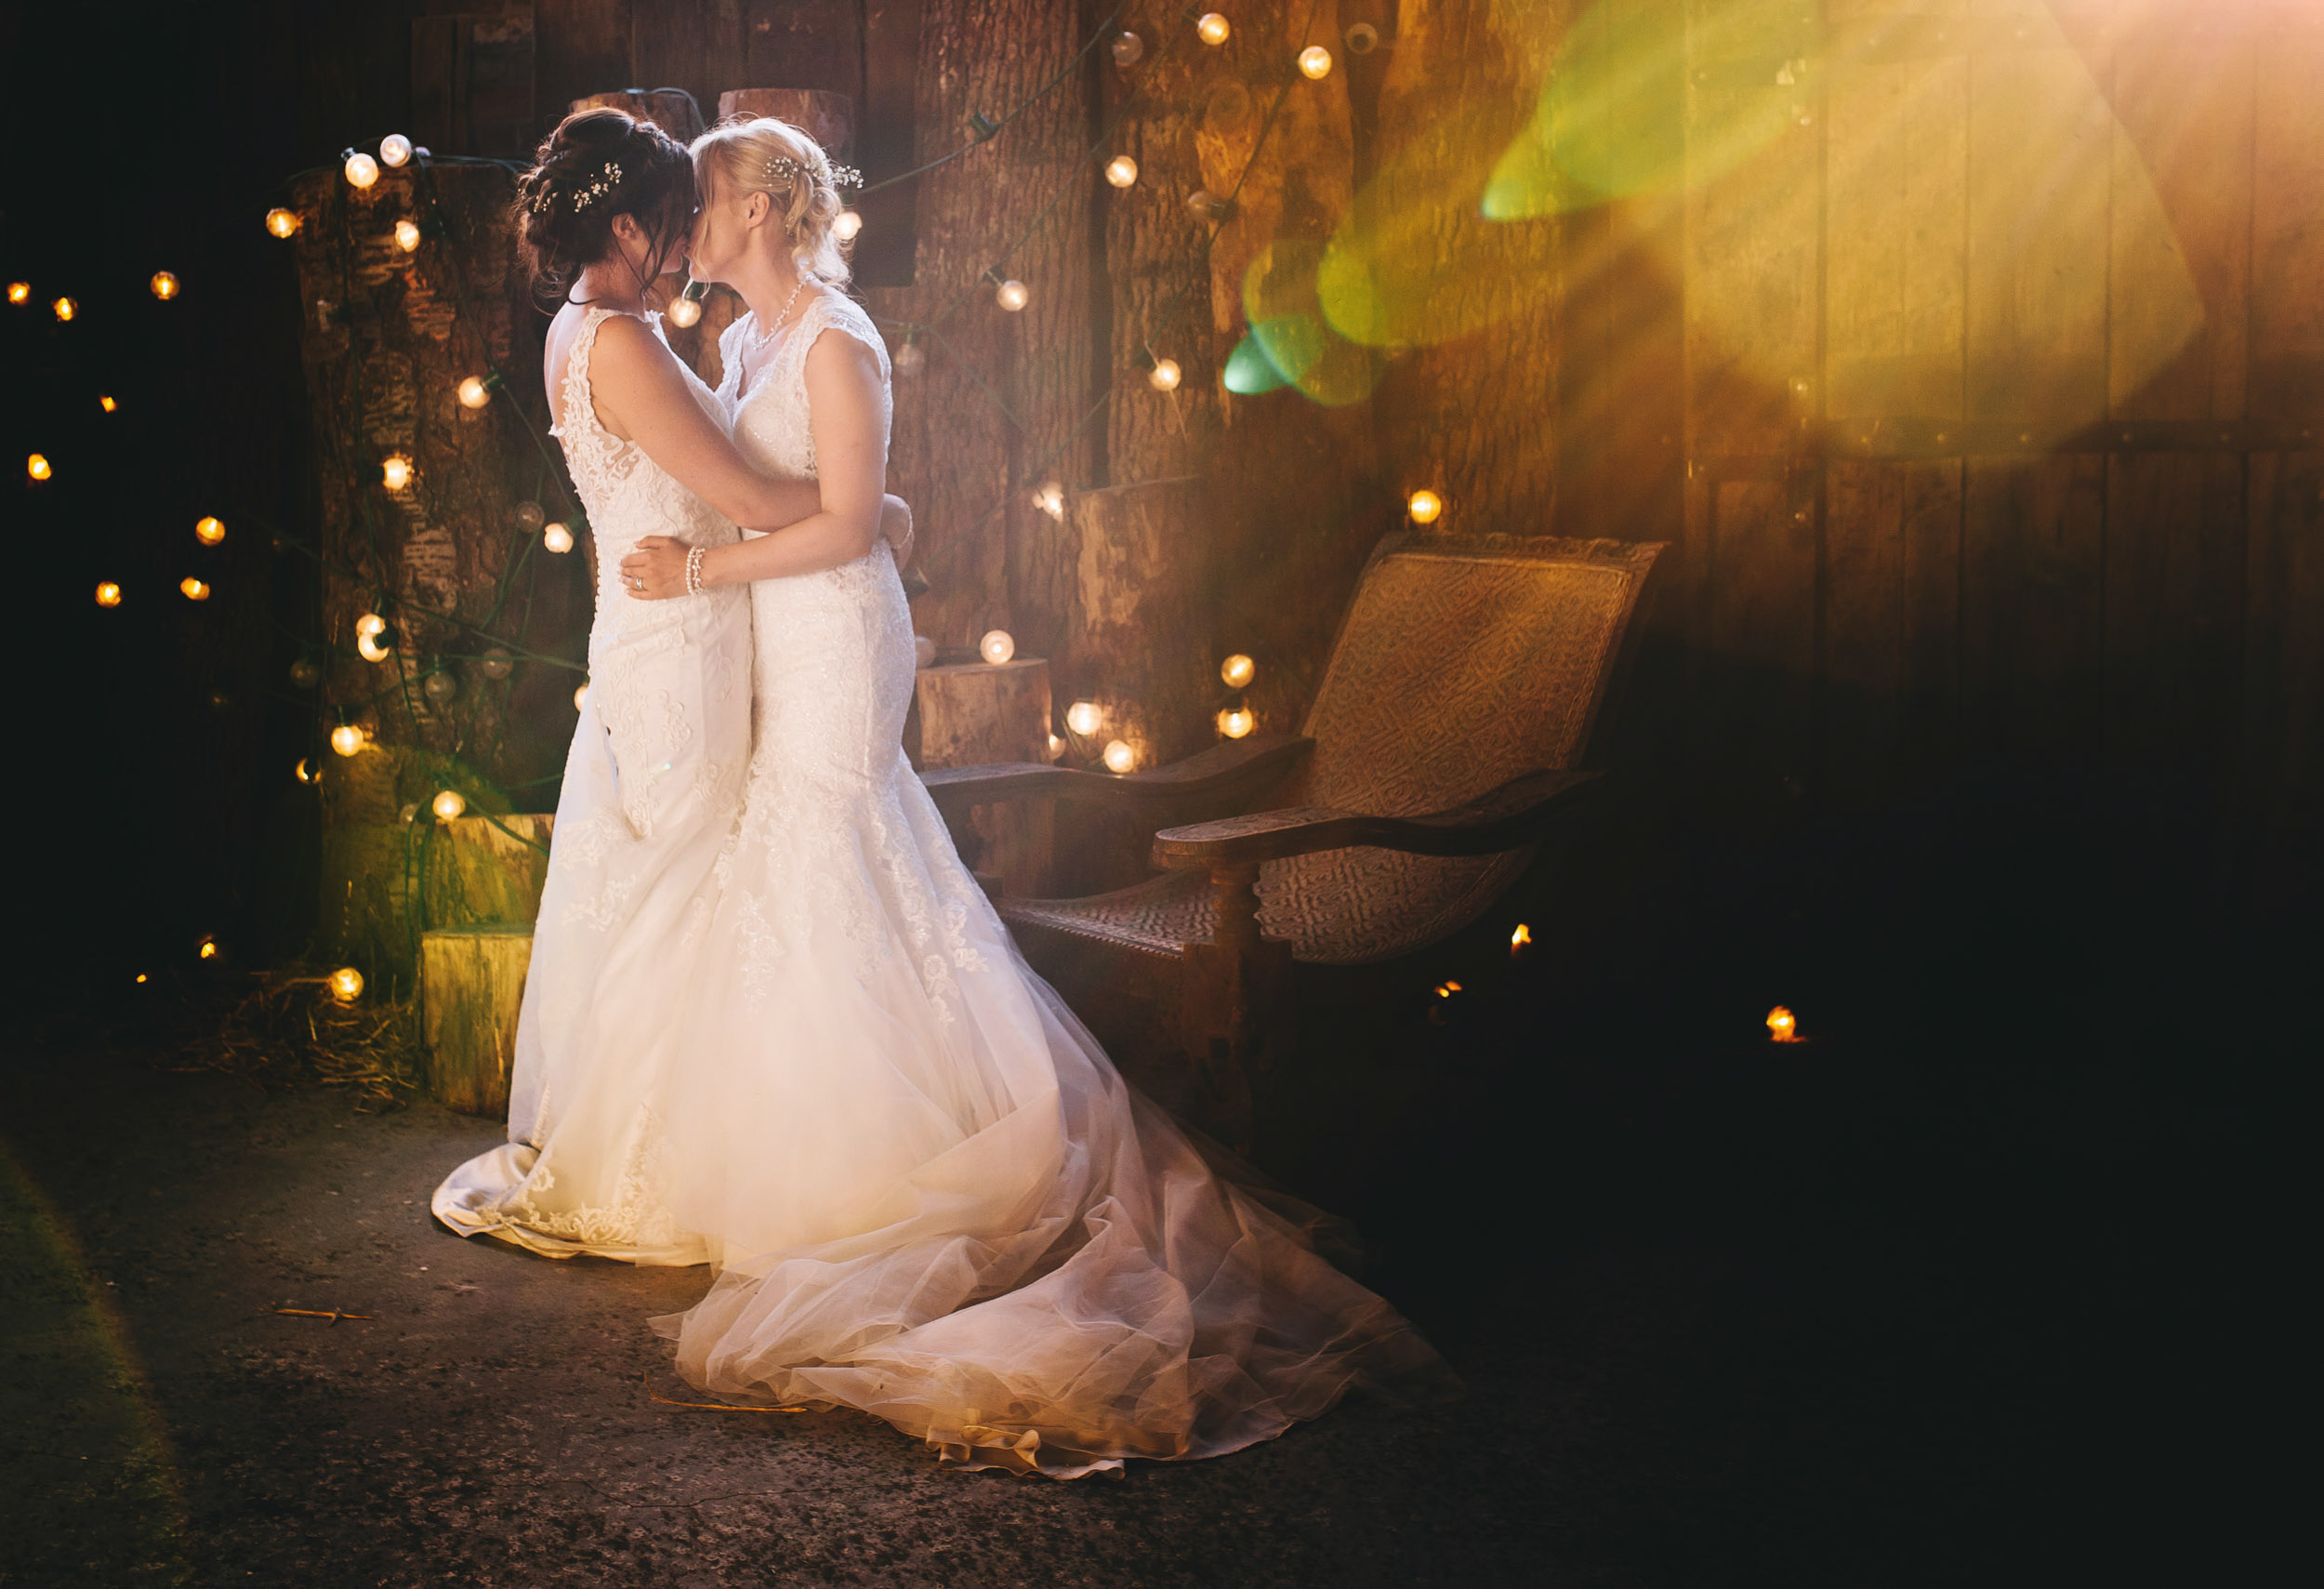 creative wedding photography Cheshire - bride and bride pictures